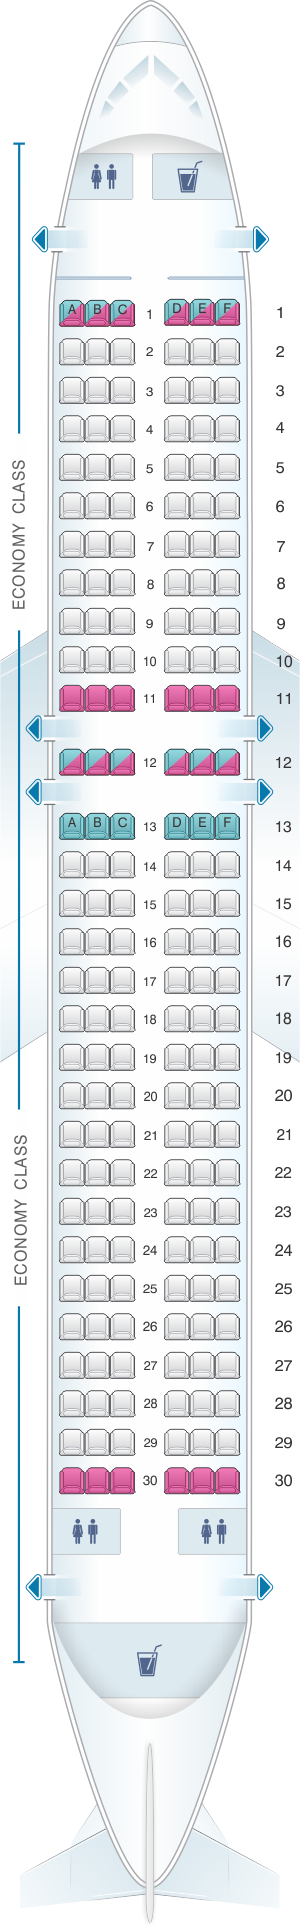 Seat map for Jetstar Airways Airbus A320 180pax